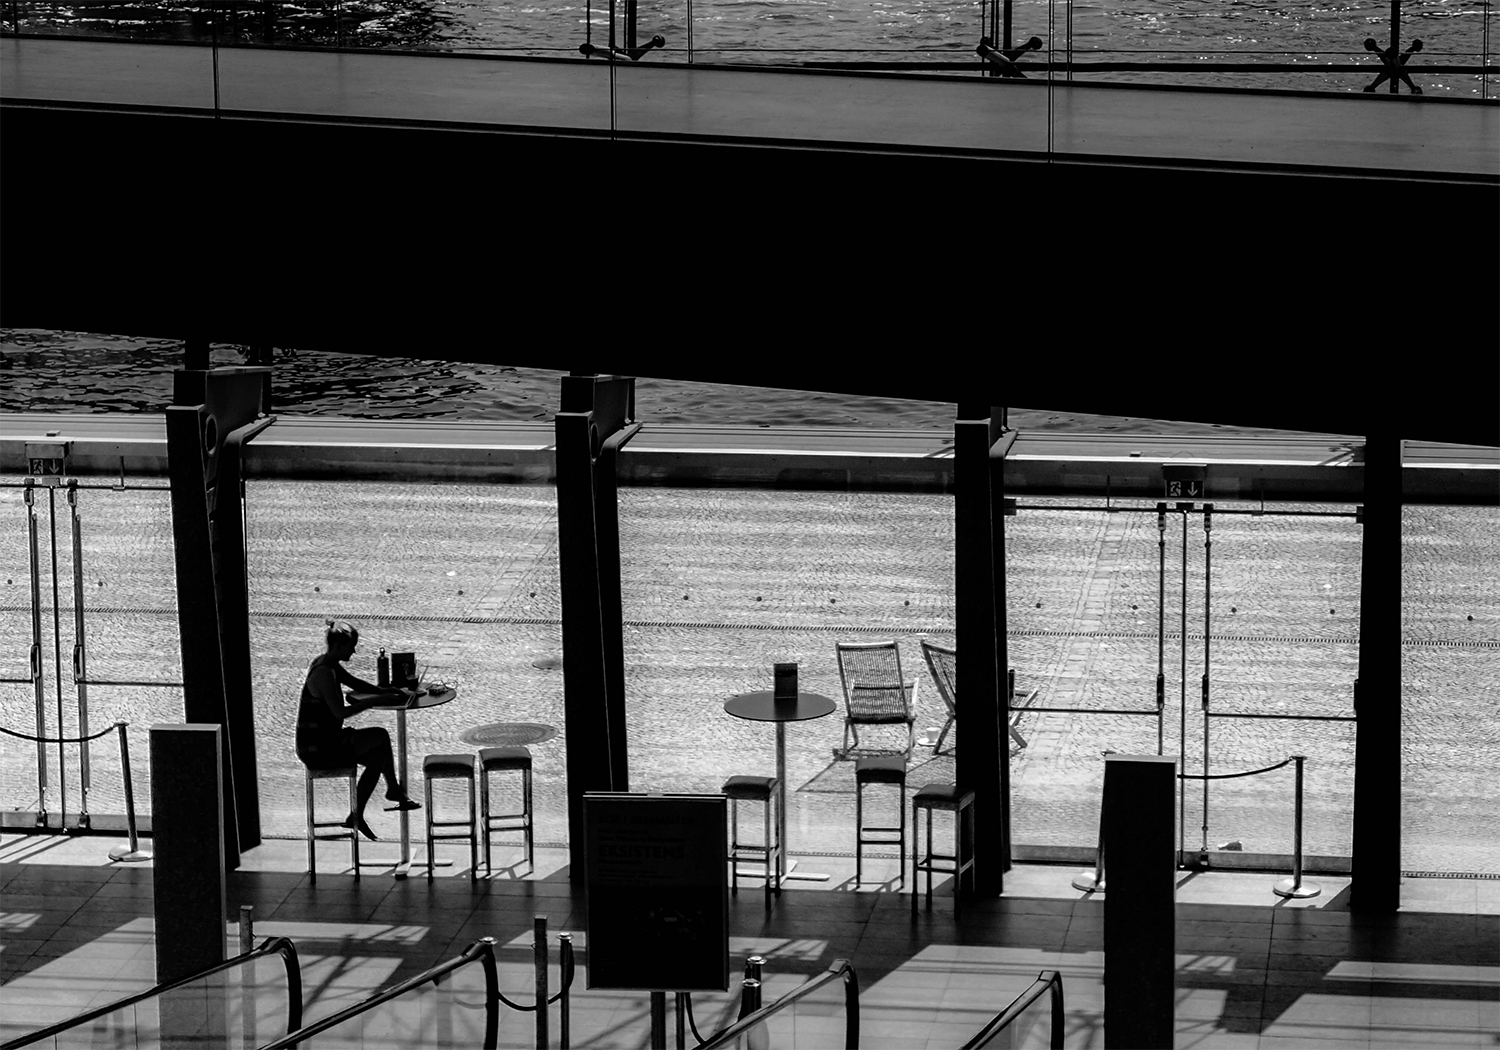 <p>A mobile worker in a modern space, or perhaps someone just relaxing.</p>